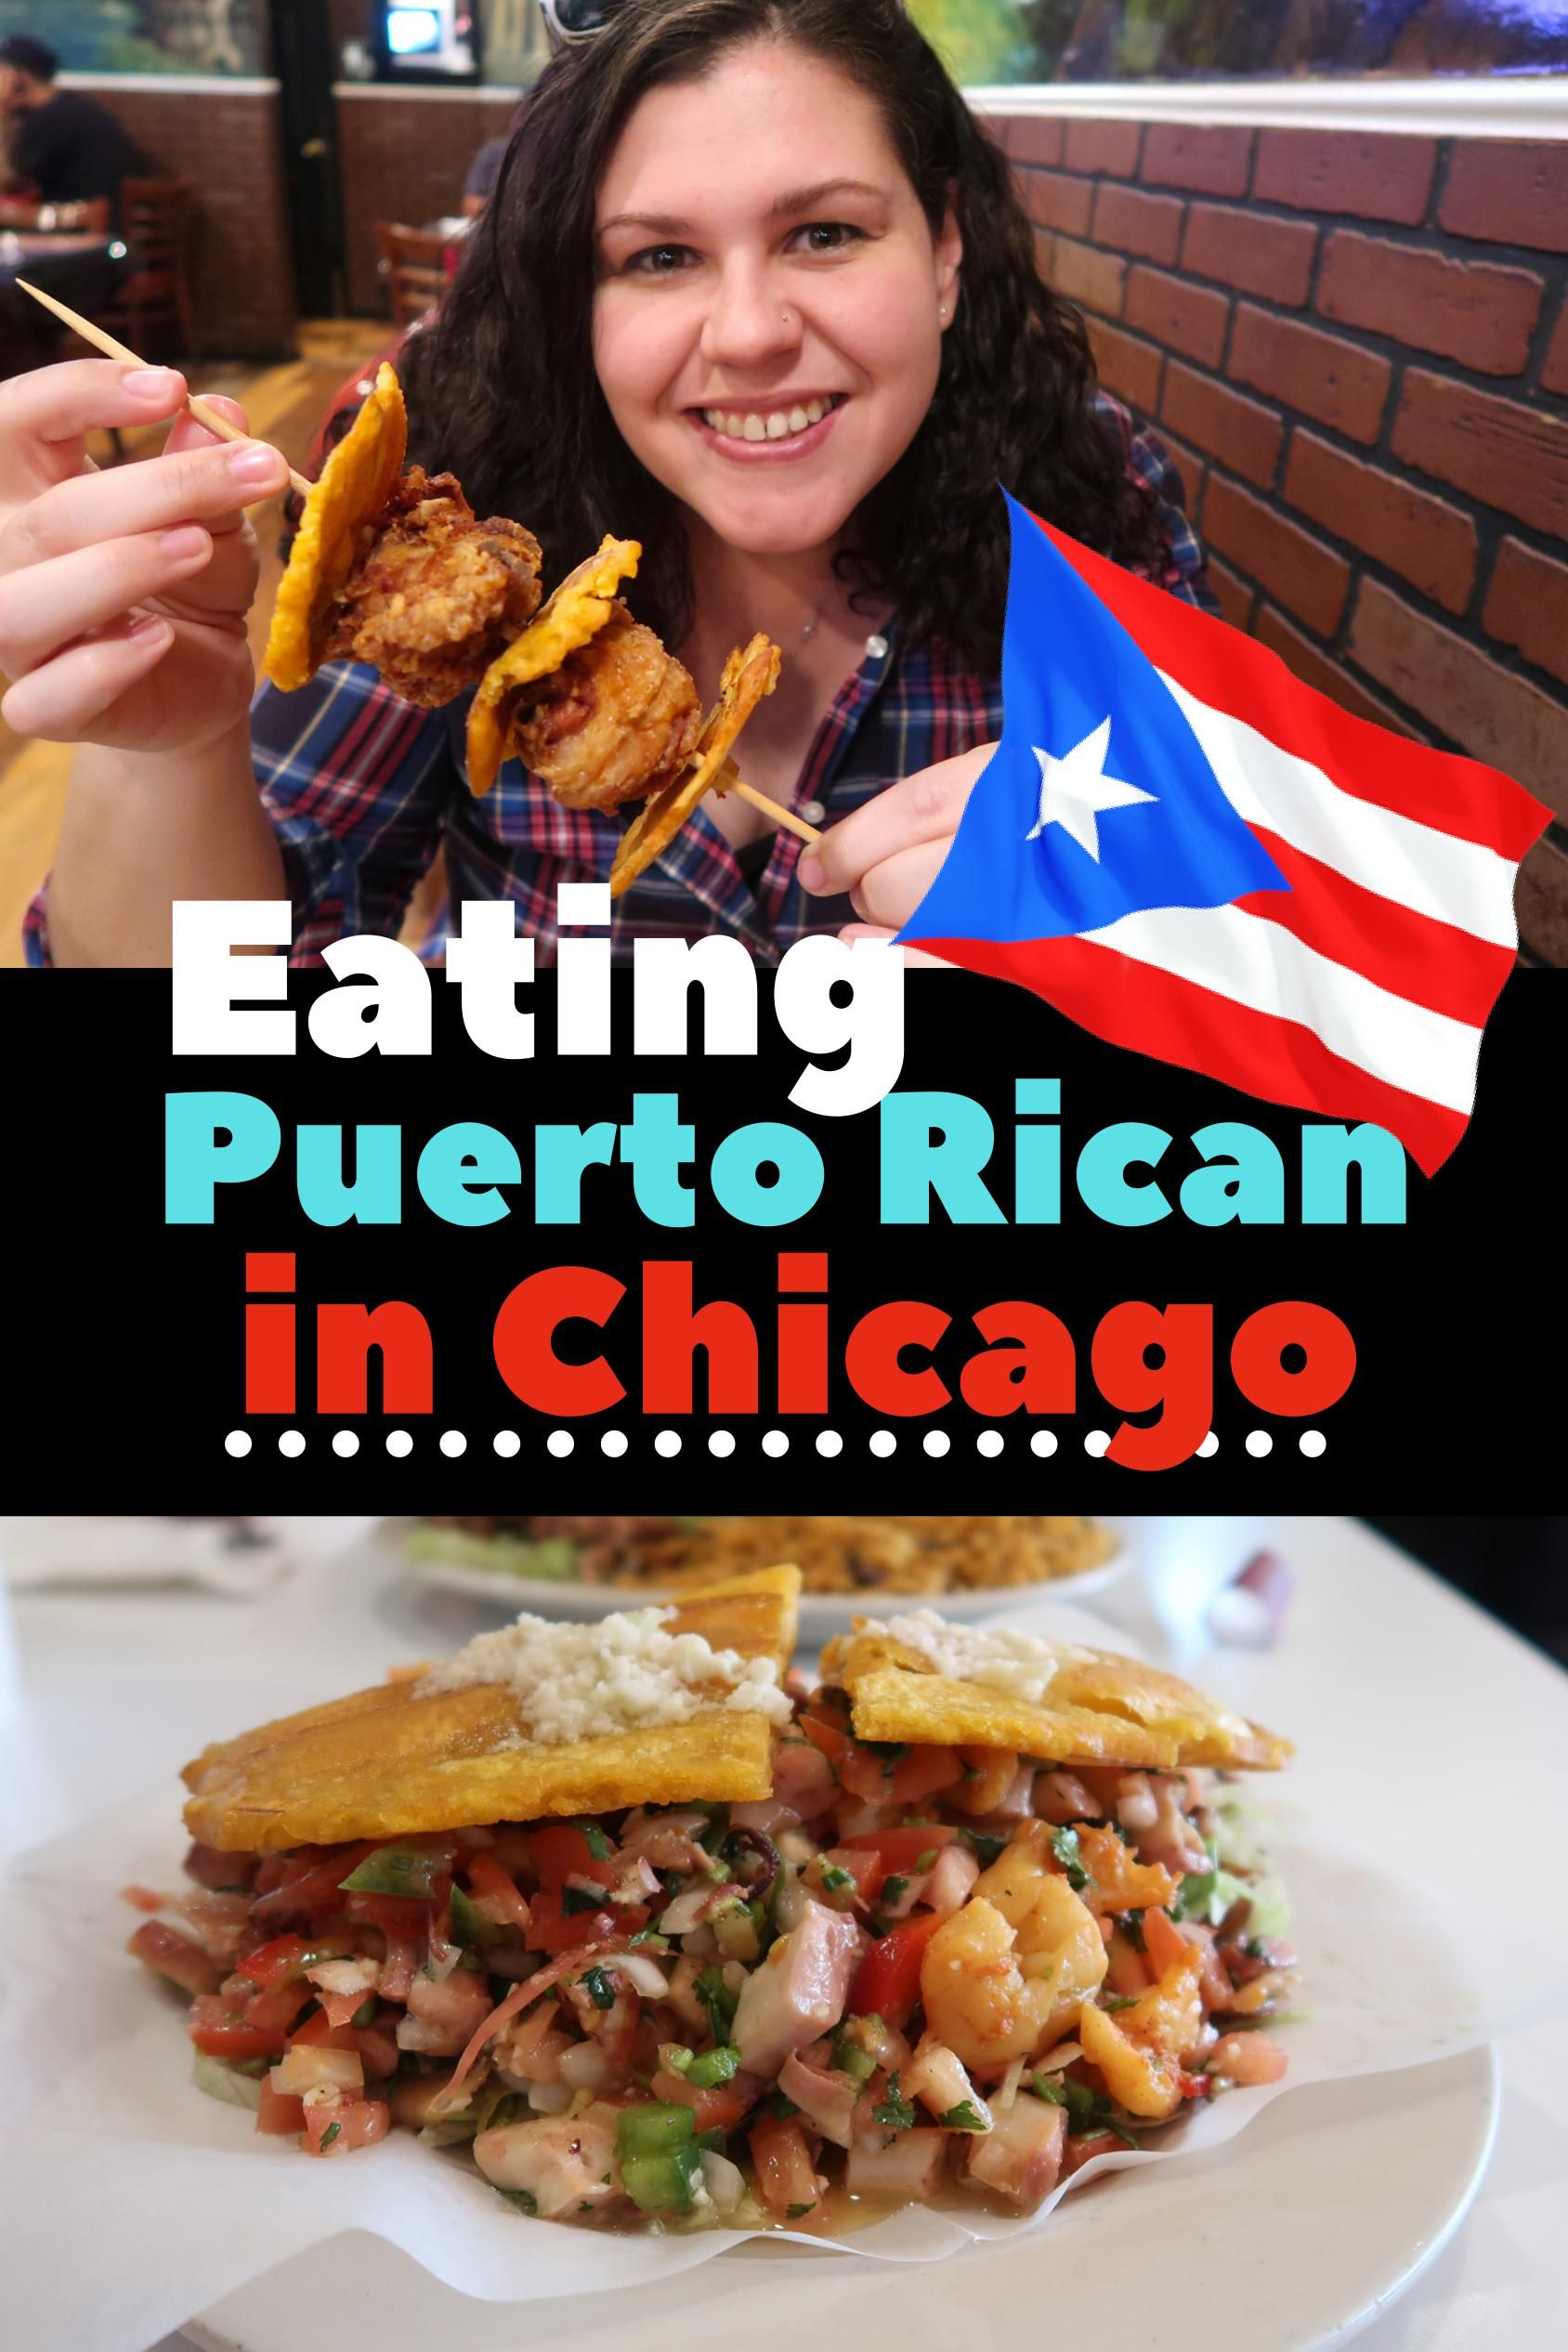 So Many Great Spots To Enjoy Puerto Rican Food In Chicago